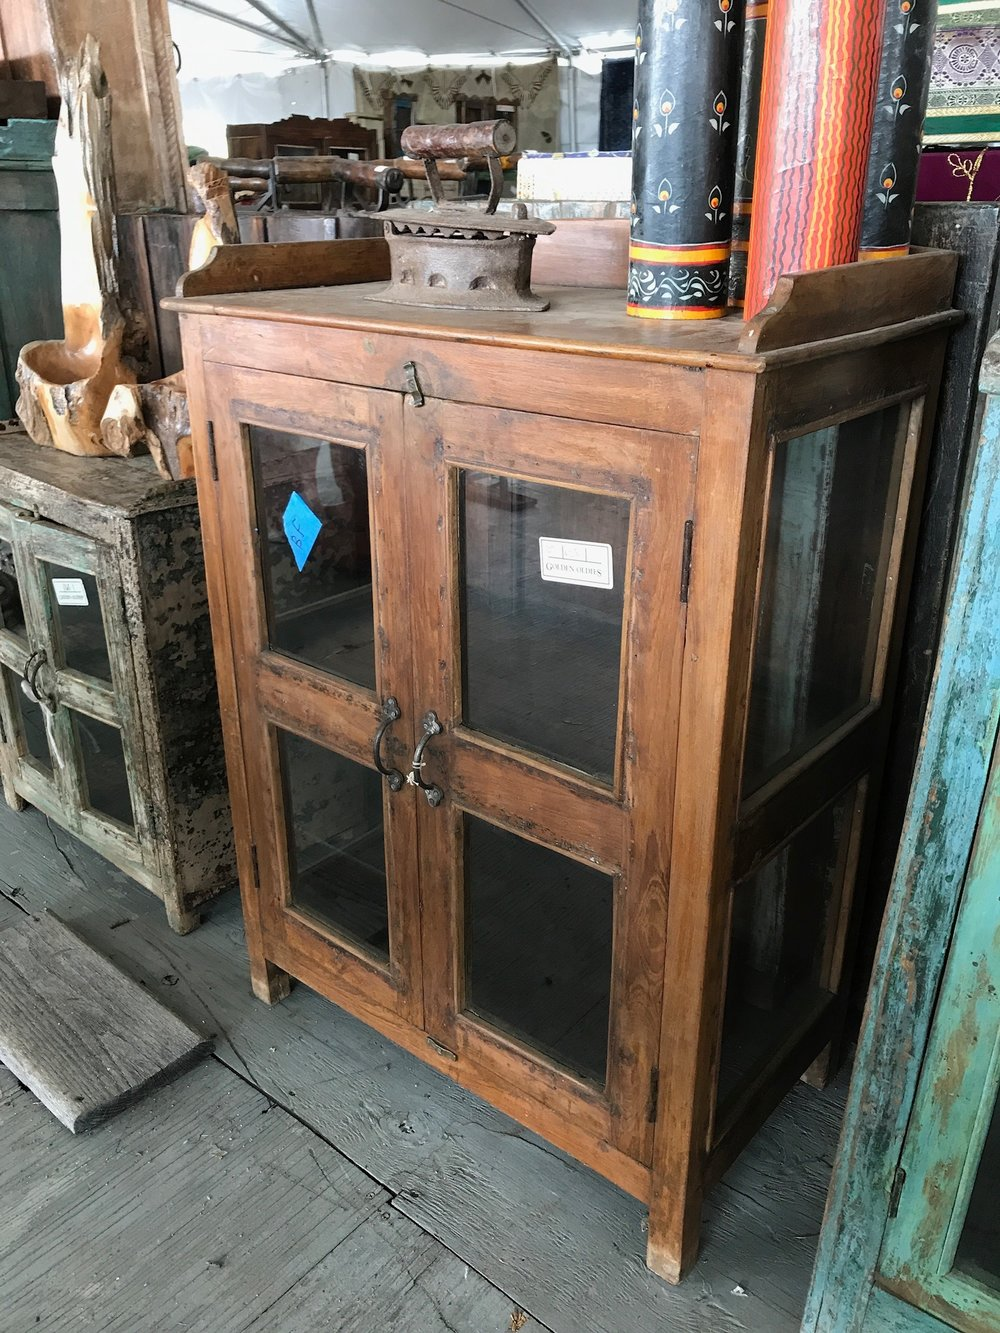 This hutch needs nothing but a happy home and some pretty things inside.